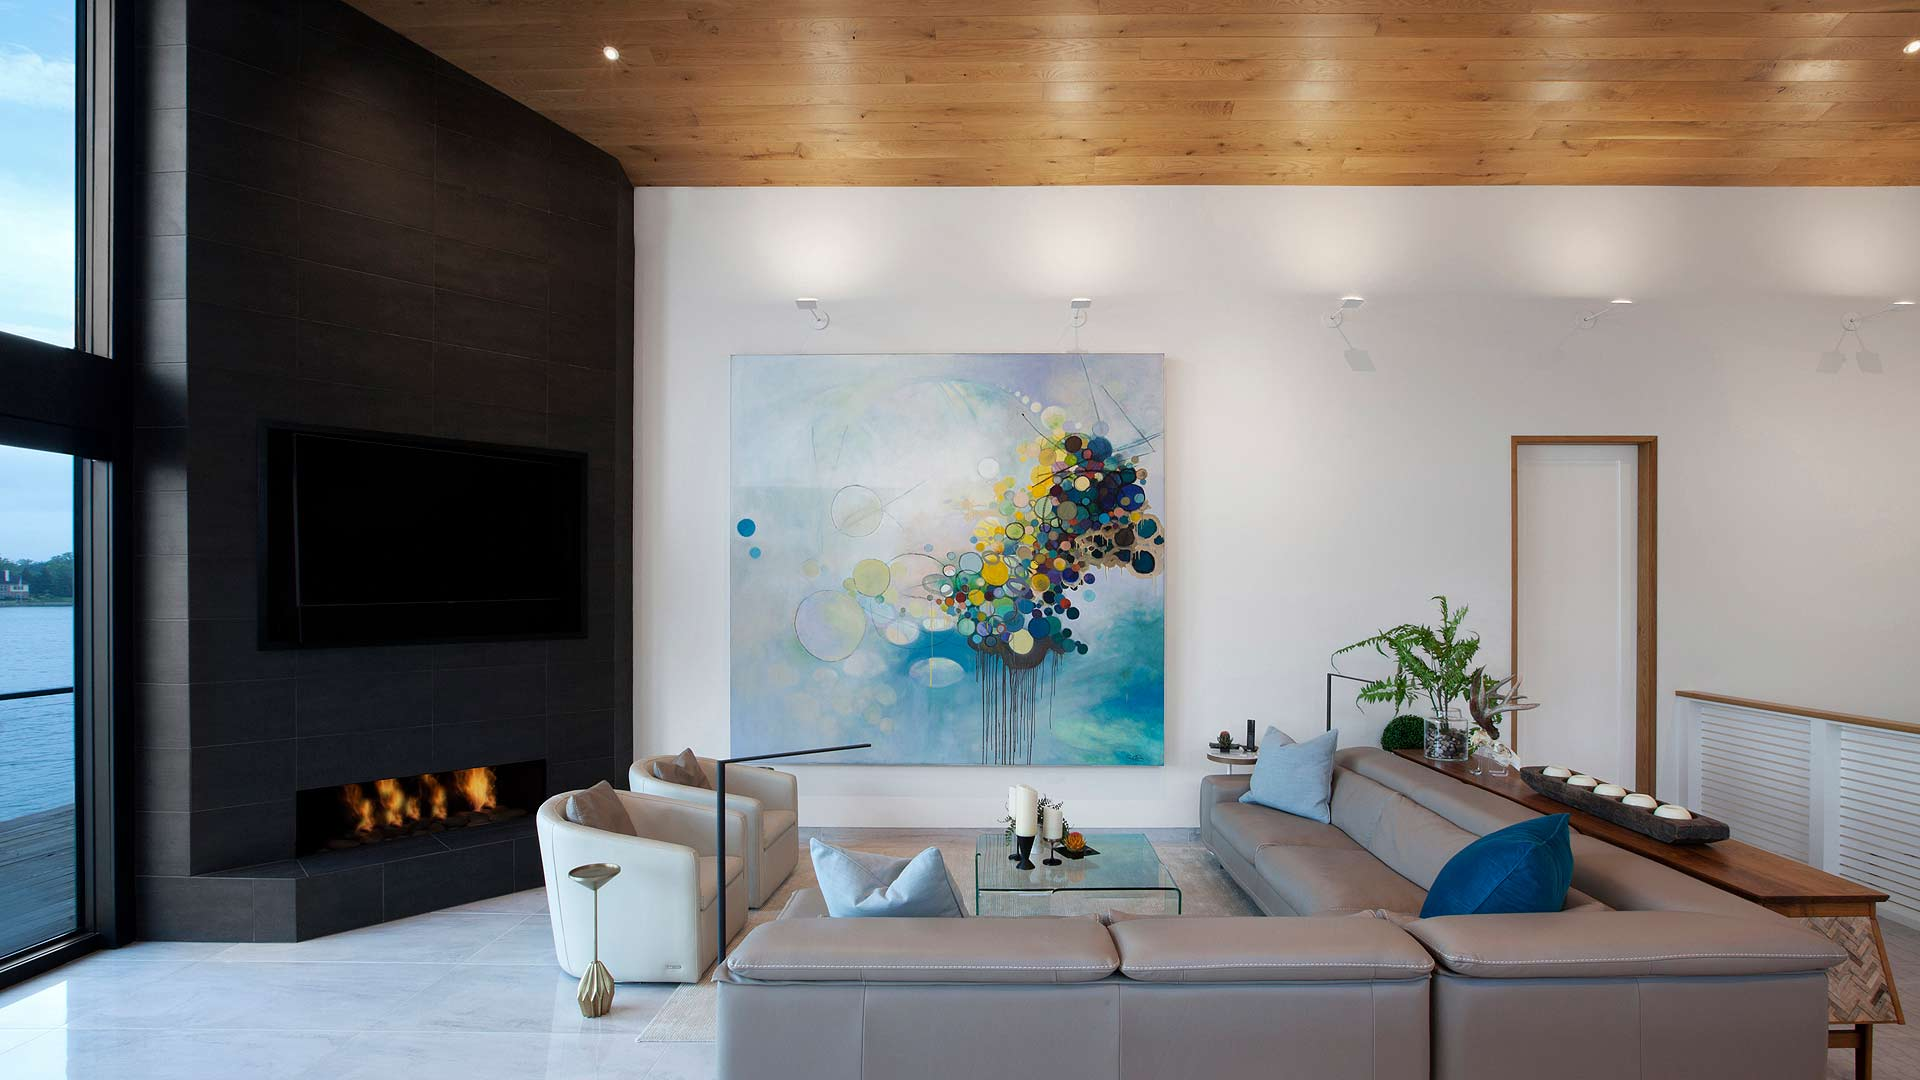 Living space re-clads existing fireplace adds new white oak vaulted ceiling with uplighting and large custom art within new open concept plan - Modern Lakehouse Renovation - Clearwater